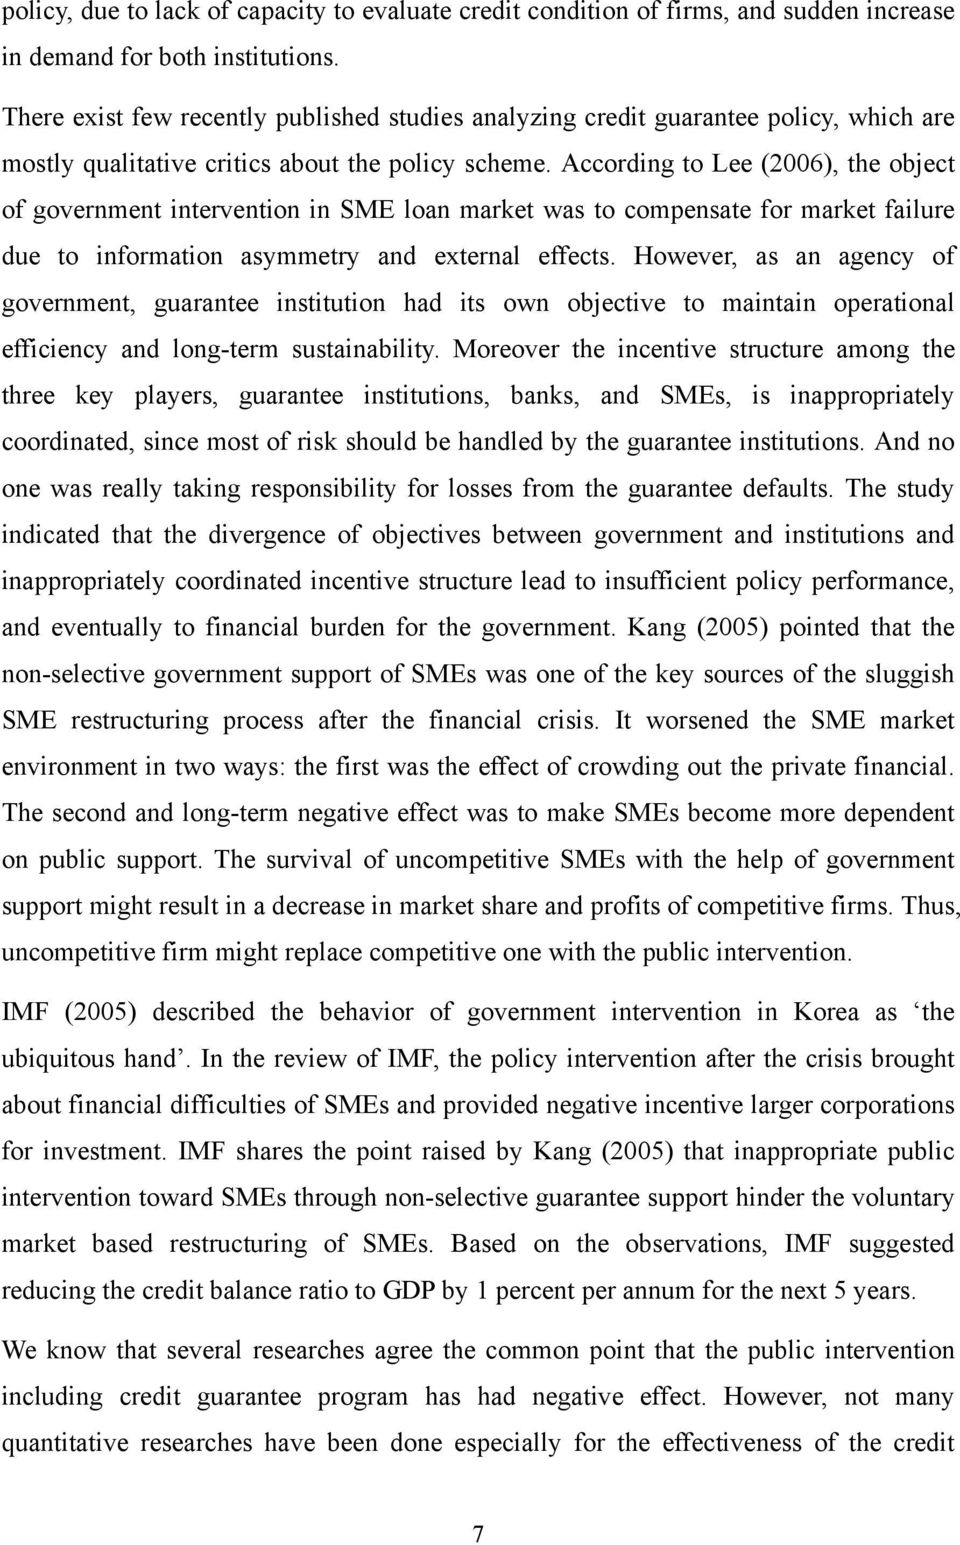 According to Lee (2006), the object of government intervention in SME loan market was to compensate for market failure due to information asymmetry and external effects.